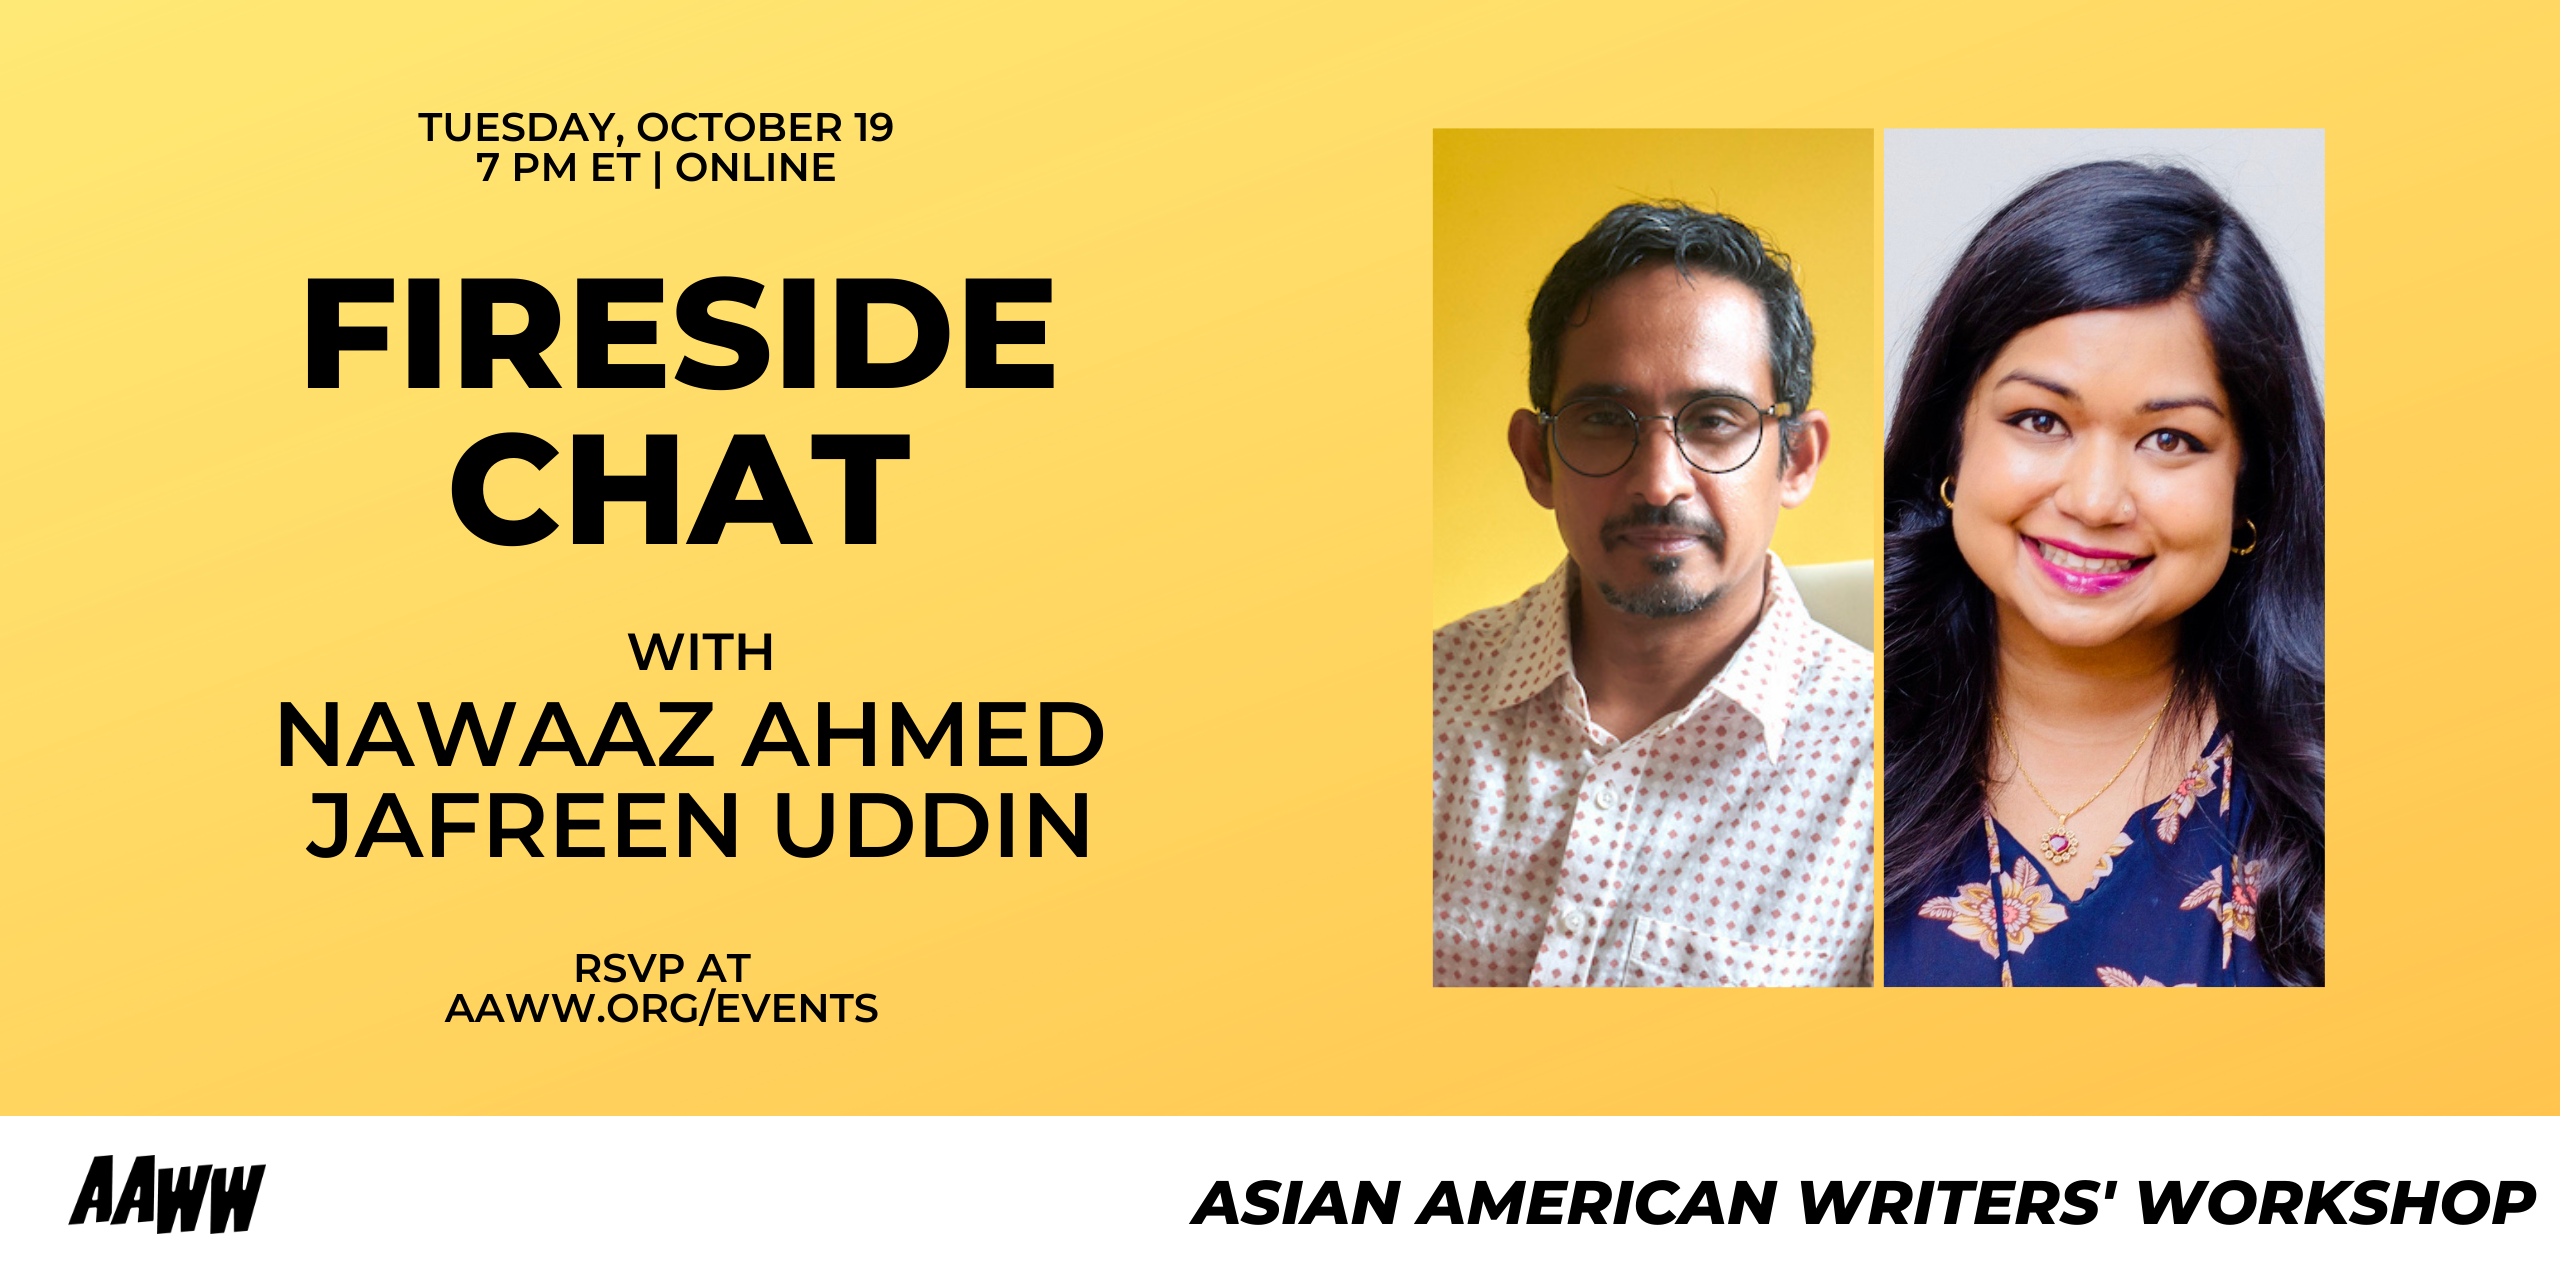 Fireside Chat: Nawaaz Ahmed and Jafreen Uddin